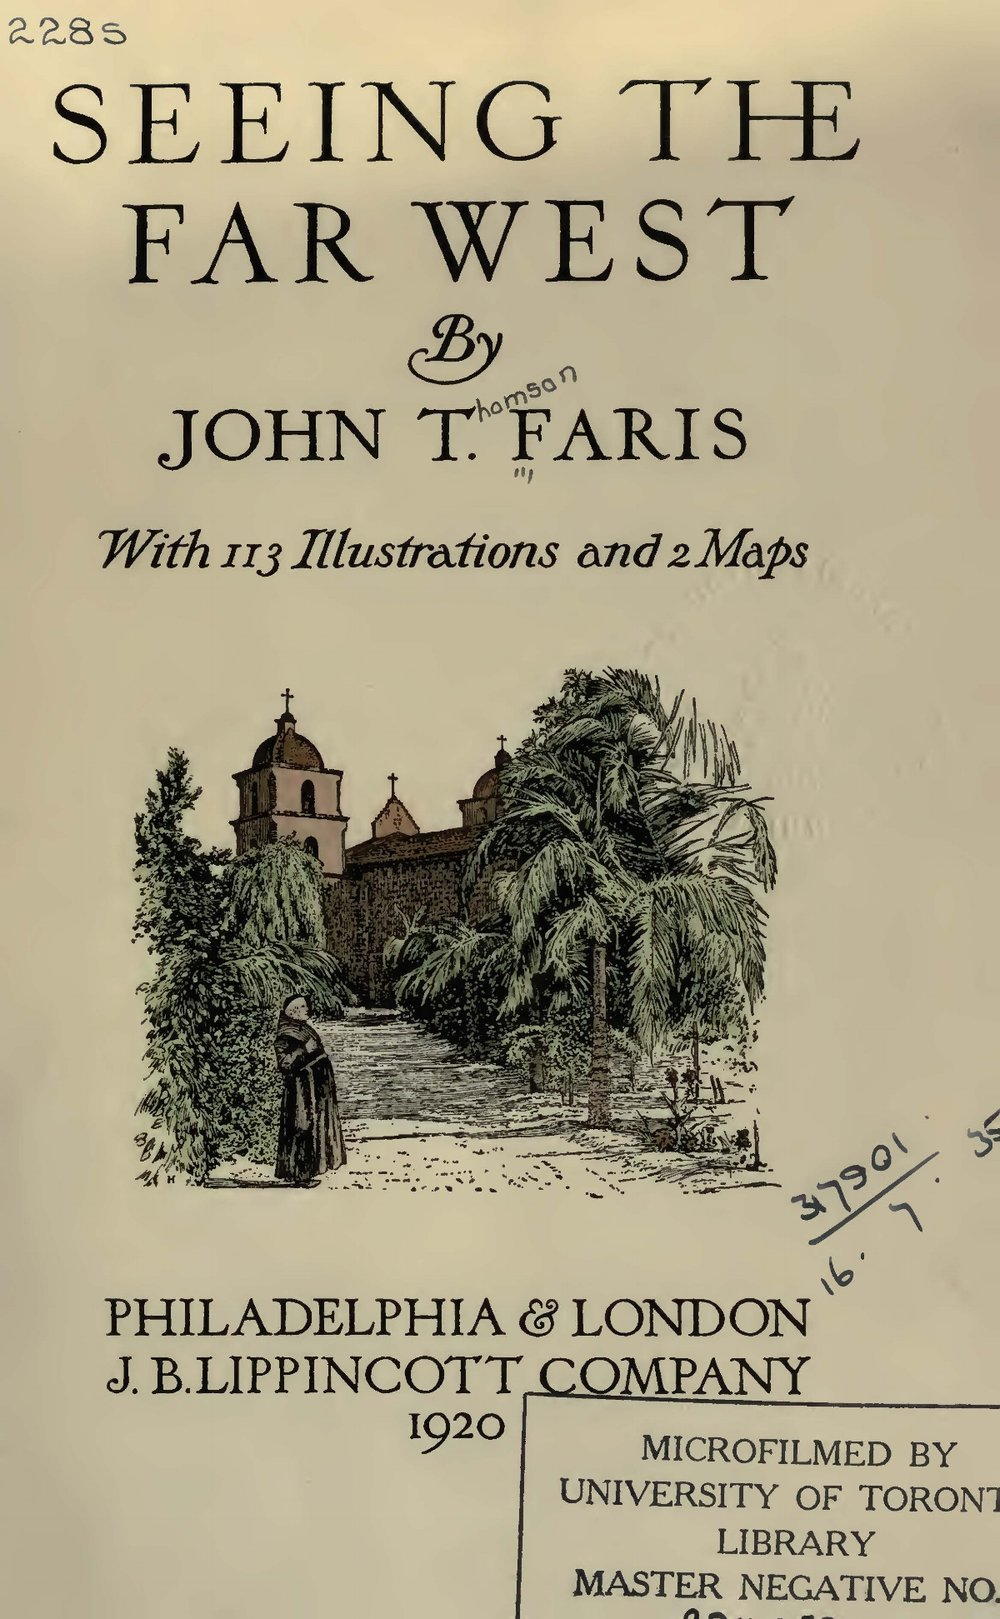 Faris, John Thomson, Seeing the Far West Title Page.jpg